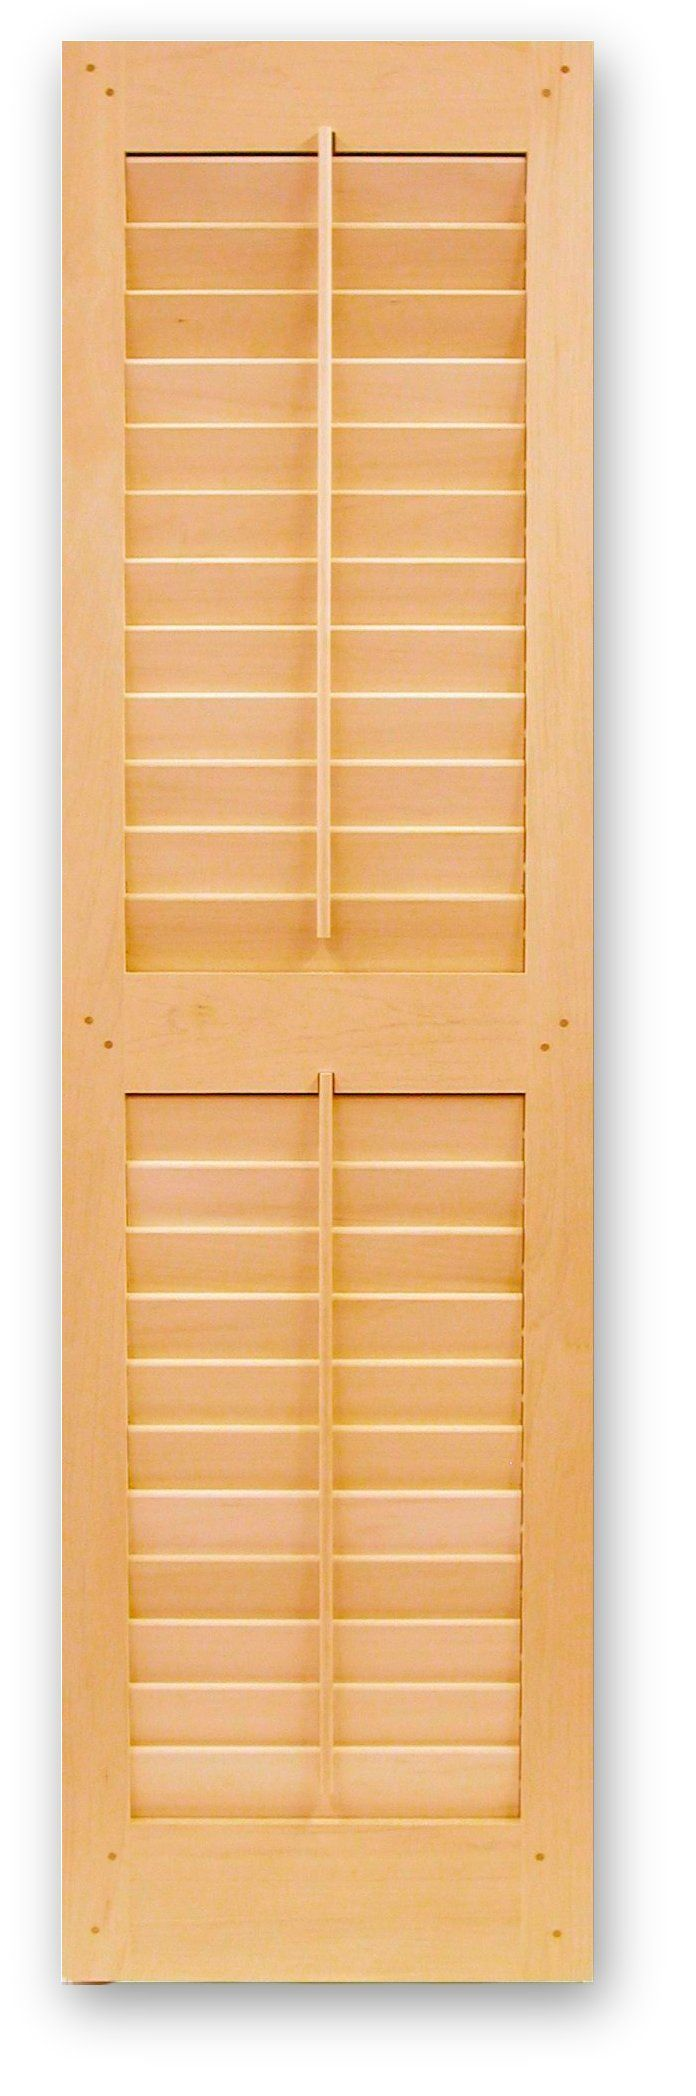 Interior And Exterior Shutters With Operable 2.1/2u0027u0027 Plantation Louvers